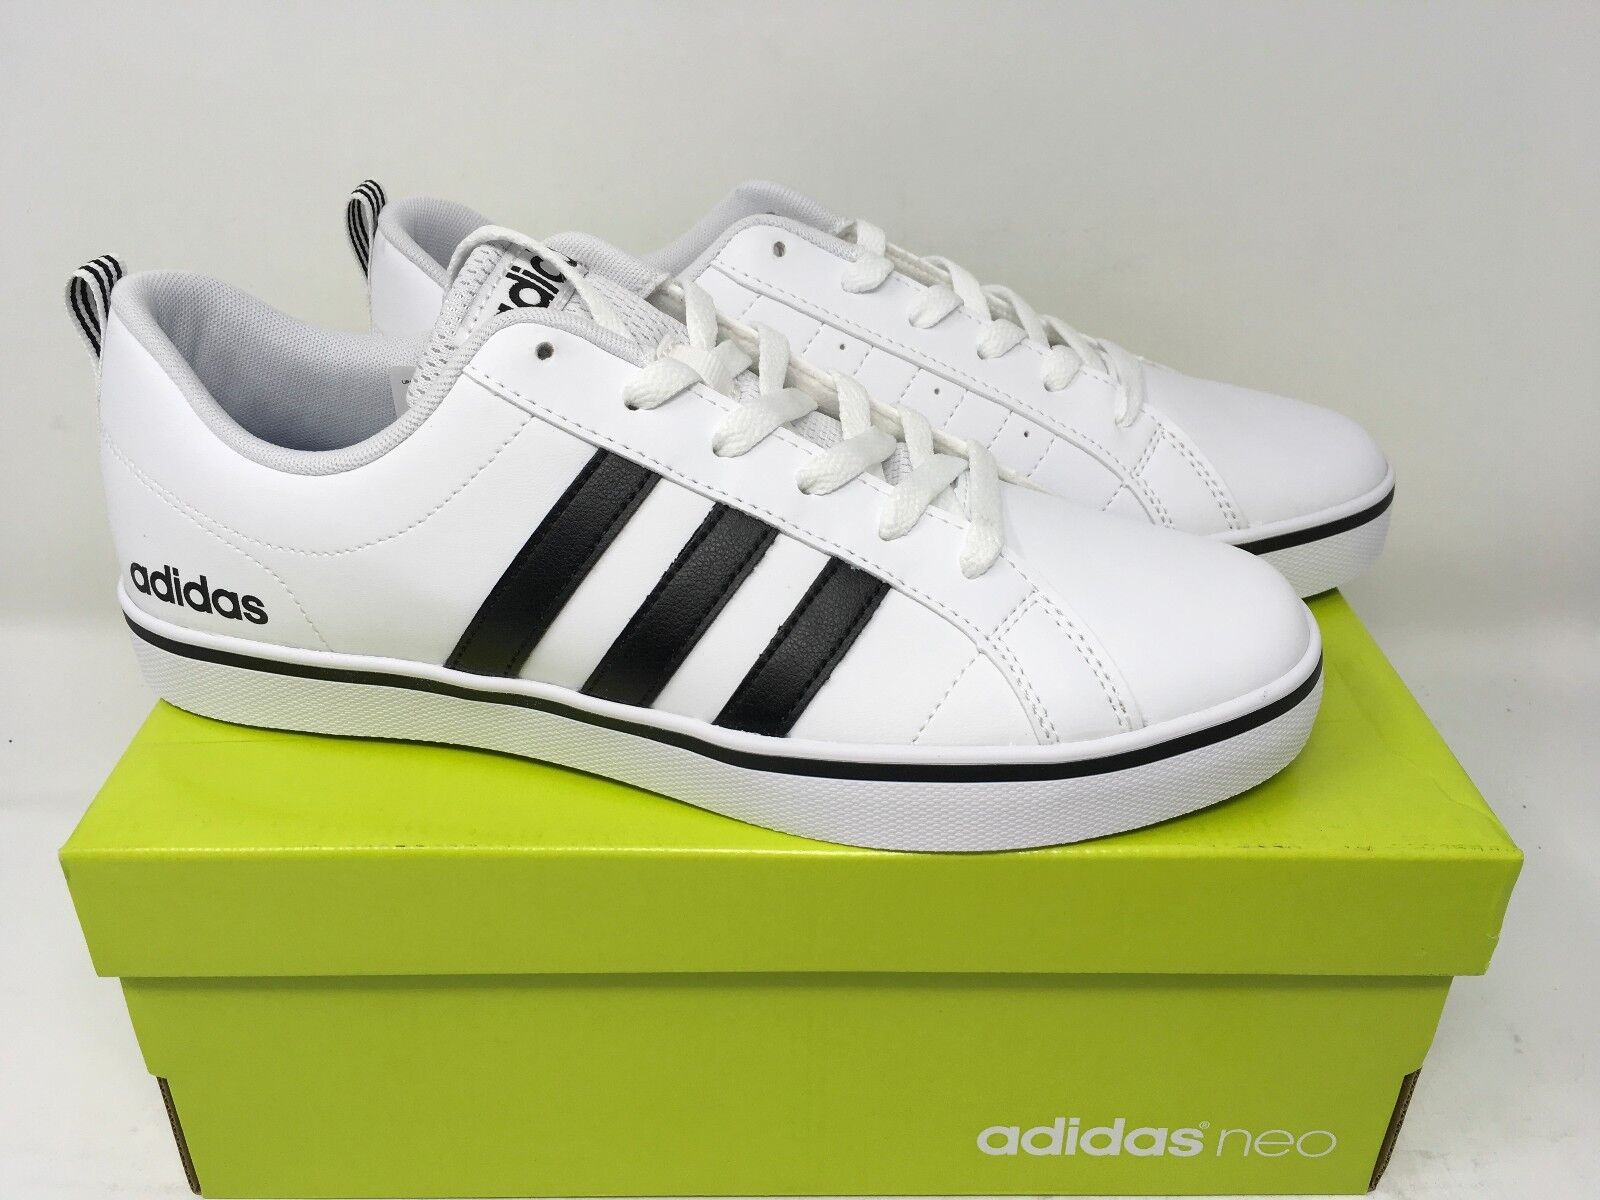 Adidas NEO Men's Pace VS Fashion Sneakers Shoes White Black Blue AW4594 NEW